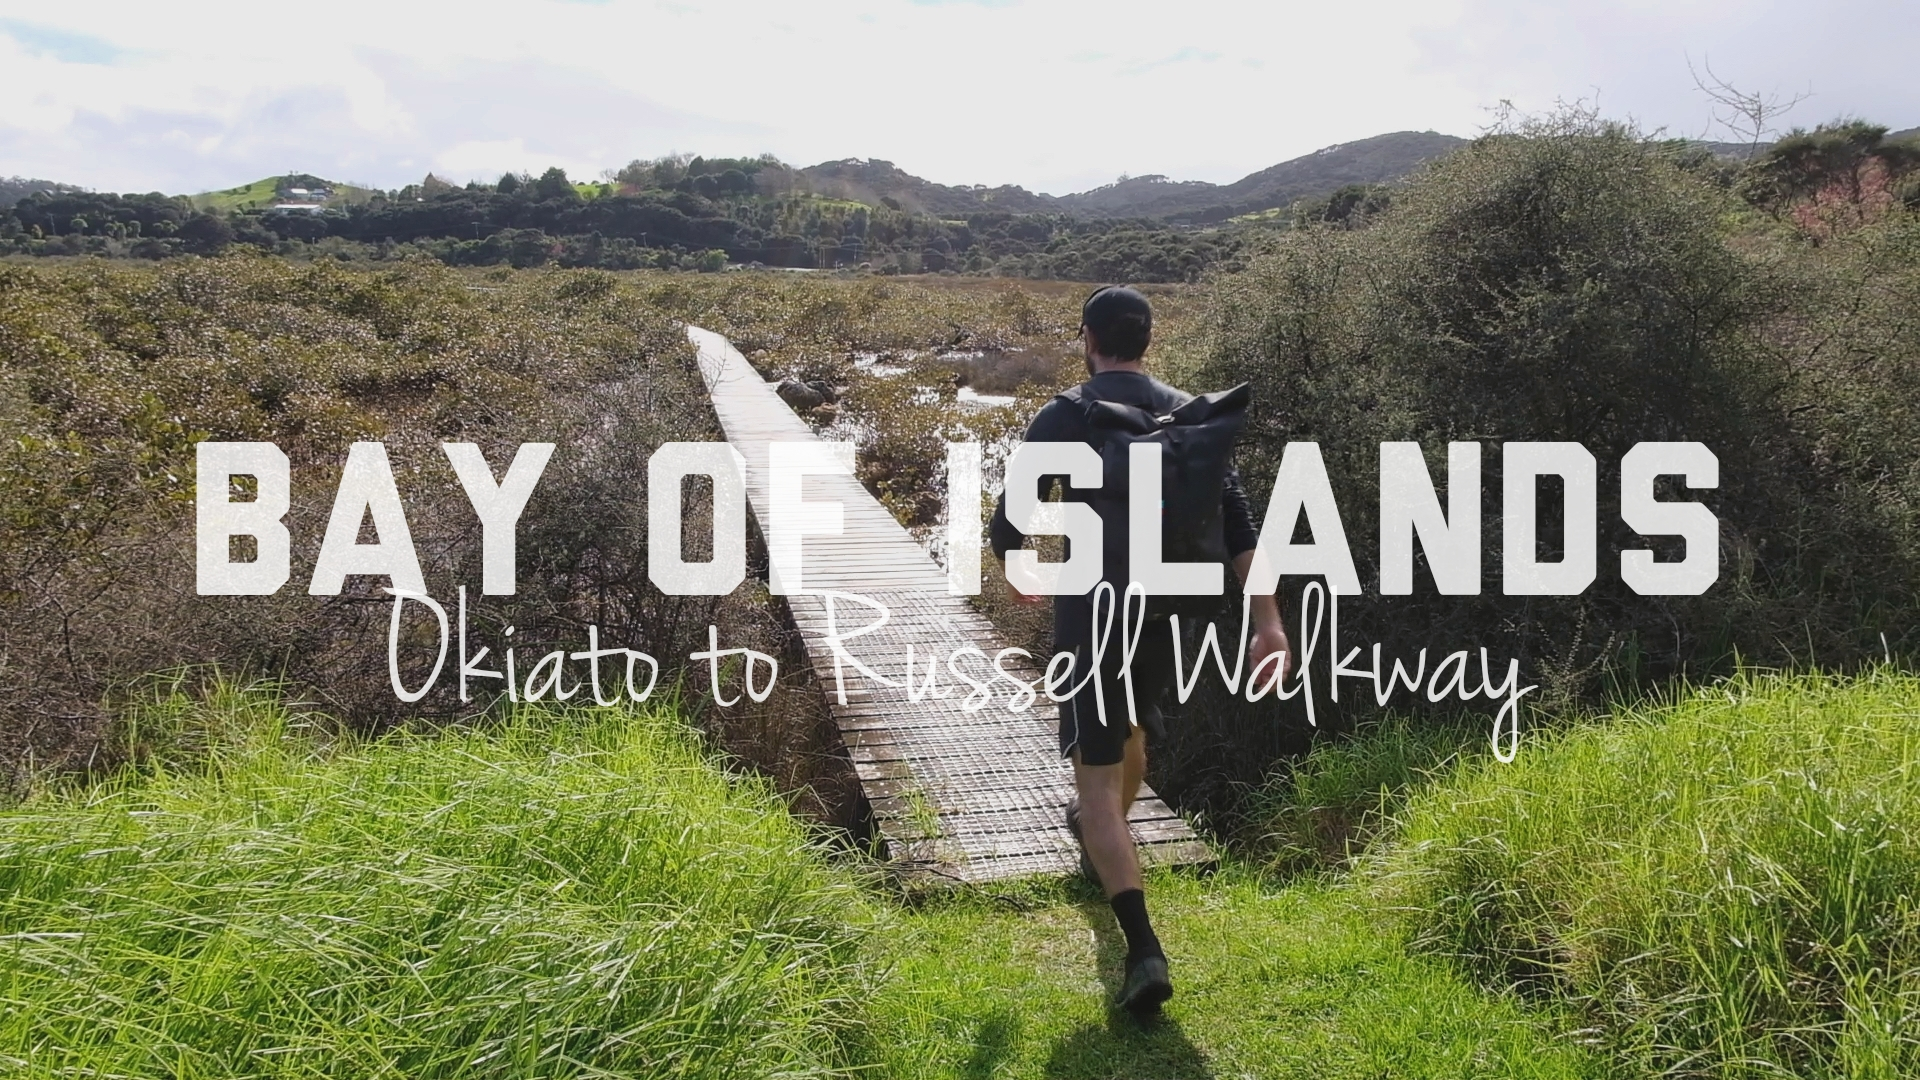 Hiking Okiato to Russell Walkway in Bay of Islands, NZ